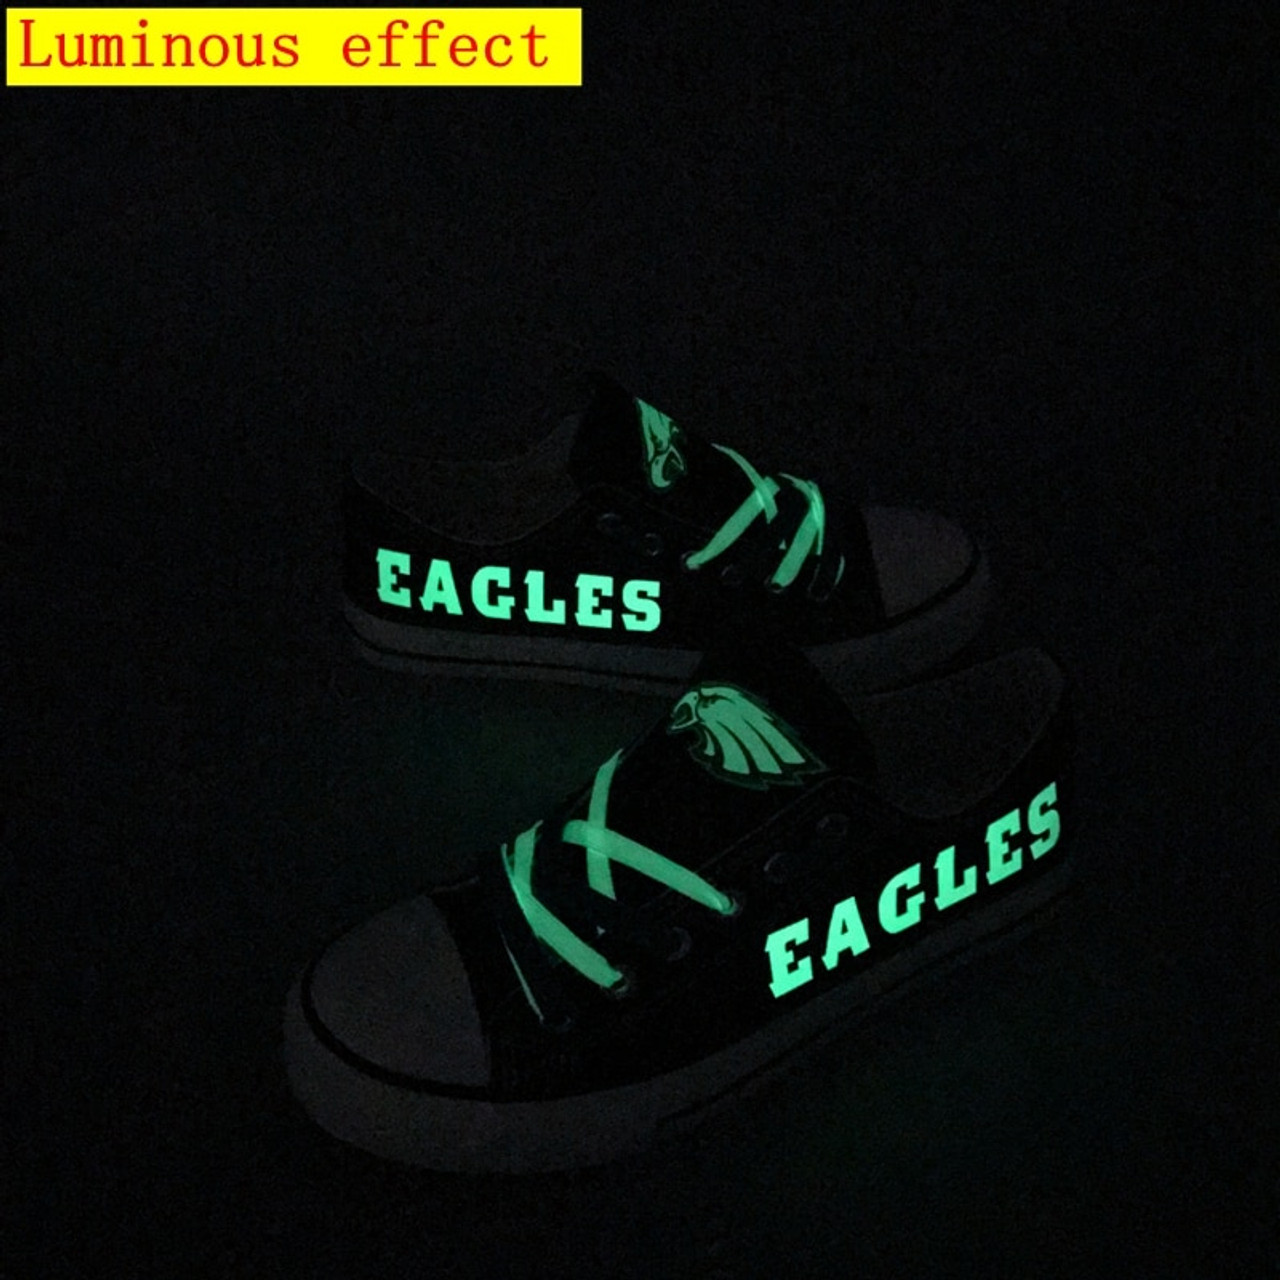 **(OFFICIALLY-LICENSED-N.F.L.PHILADELPHIA-EAGLES-RUNNING-SHOES,MENS-OR-WOMENS-ROSHE-STYLE,LIGHT-WEIGHT-SPORT-PREMIUM-RUNNING-SHOES/WITH-OFFICIAL-EAGLES-TEAM-COLORS & EAGLES-TEAM-LOGOS,SPECIAL-CUSHIONED-COMFORT-INSOLES/CUSTOM-DESIGN-RUNNING-SHOES)**